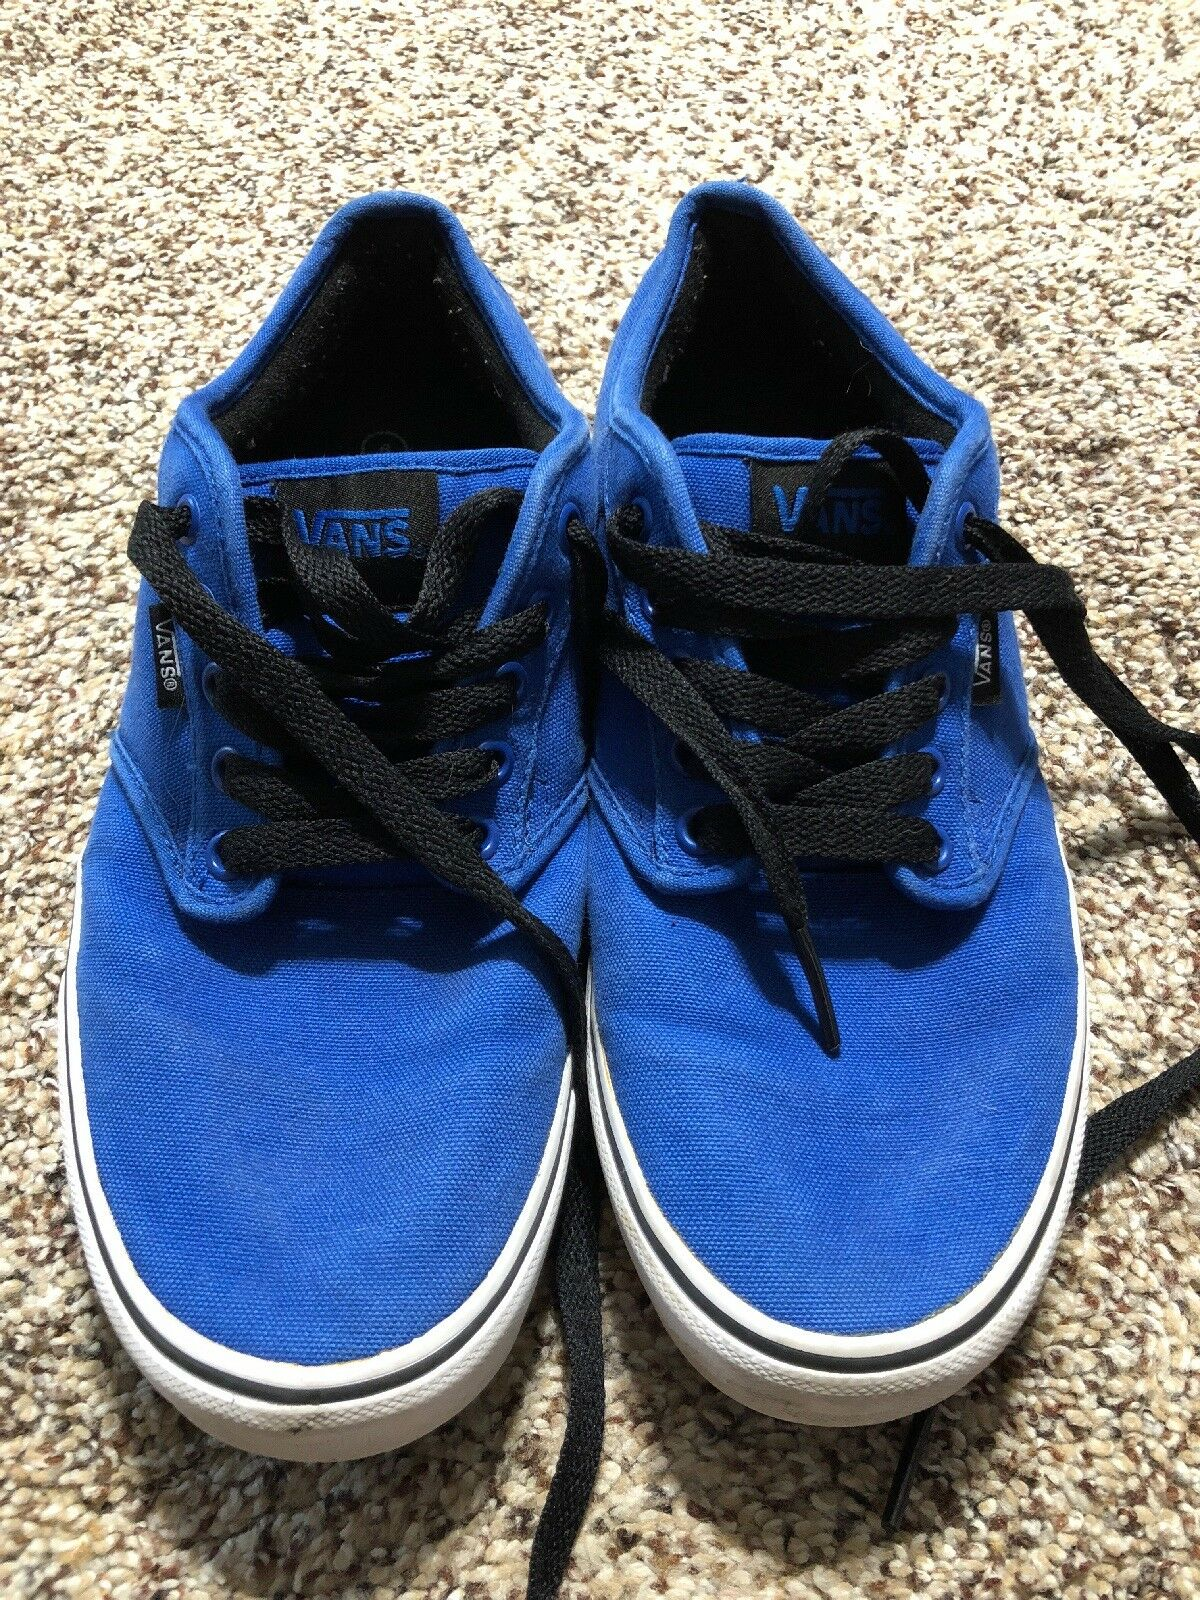 VANS ATWOOD SKATE SHOES SIZE MENS US SIZE SHOES 9 a219b9